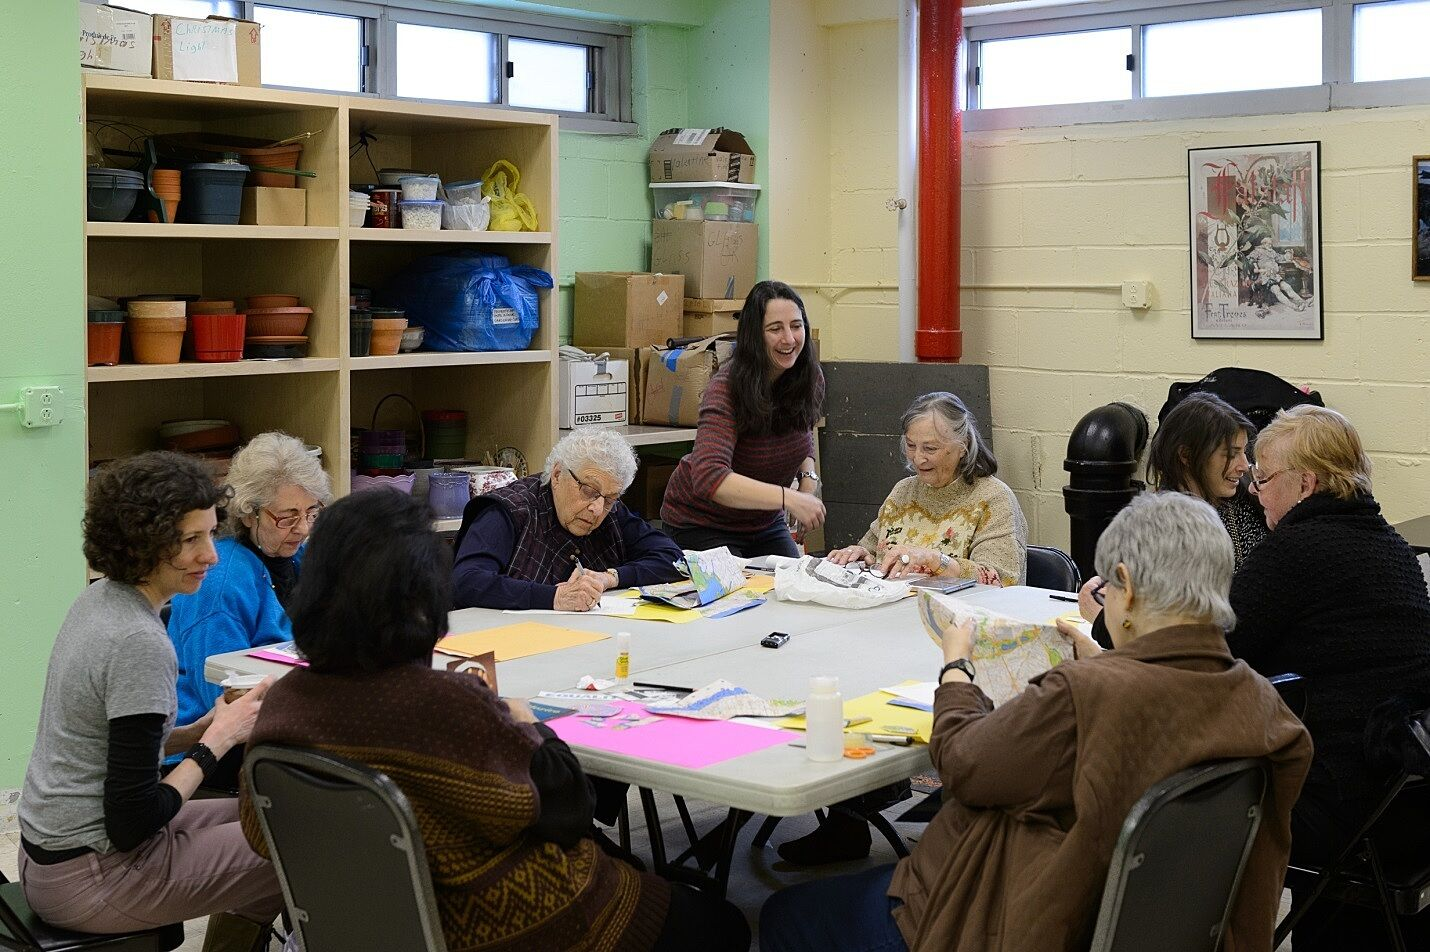 A map workshop at a senior center in New York